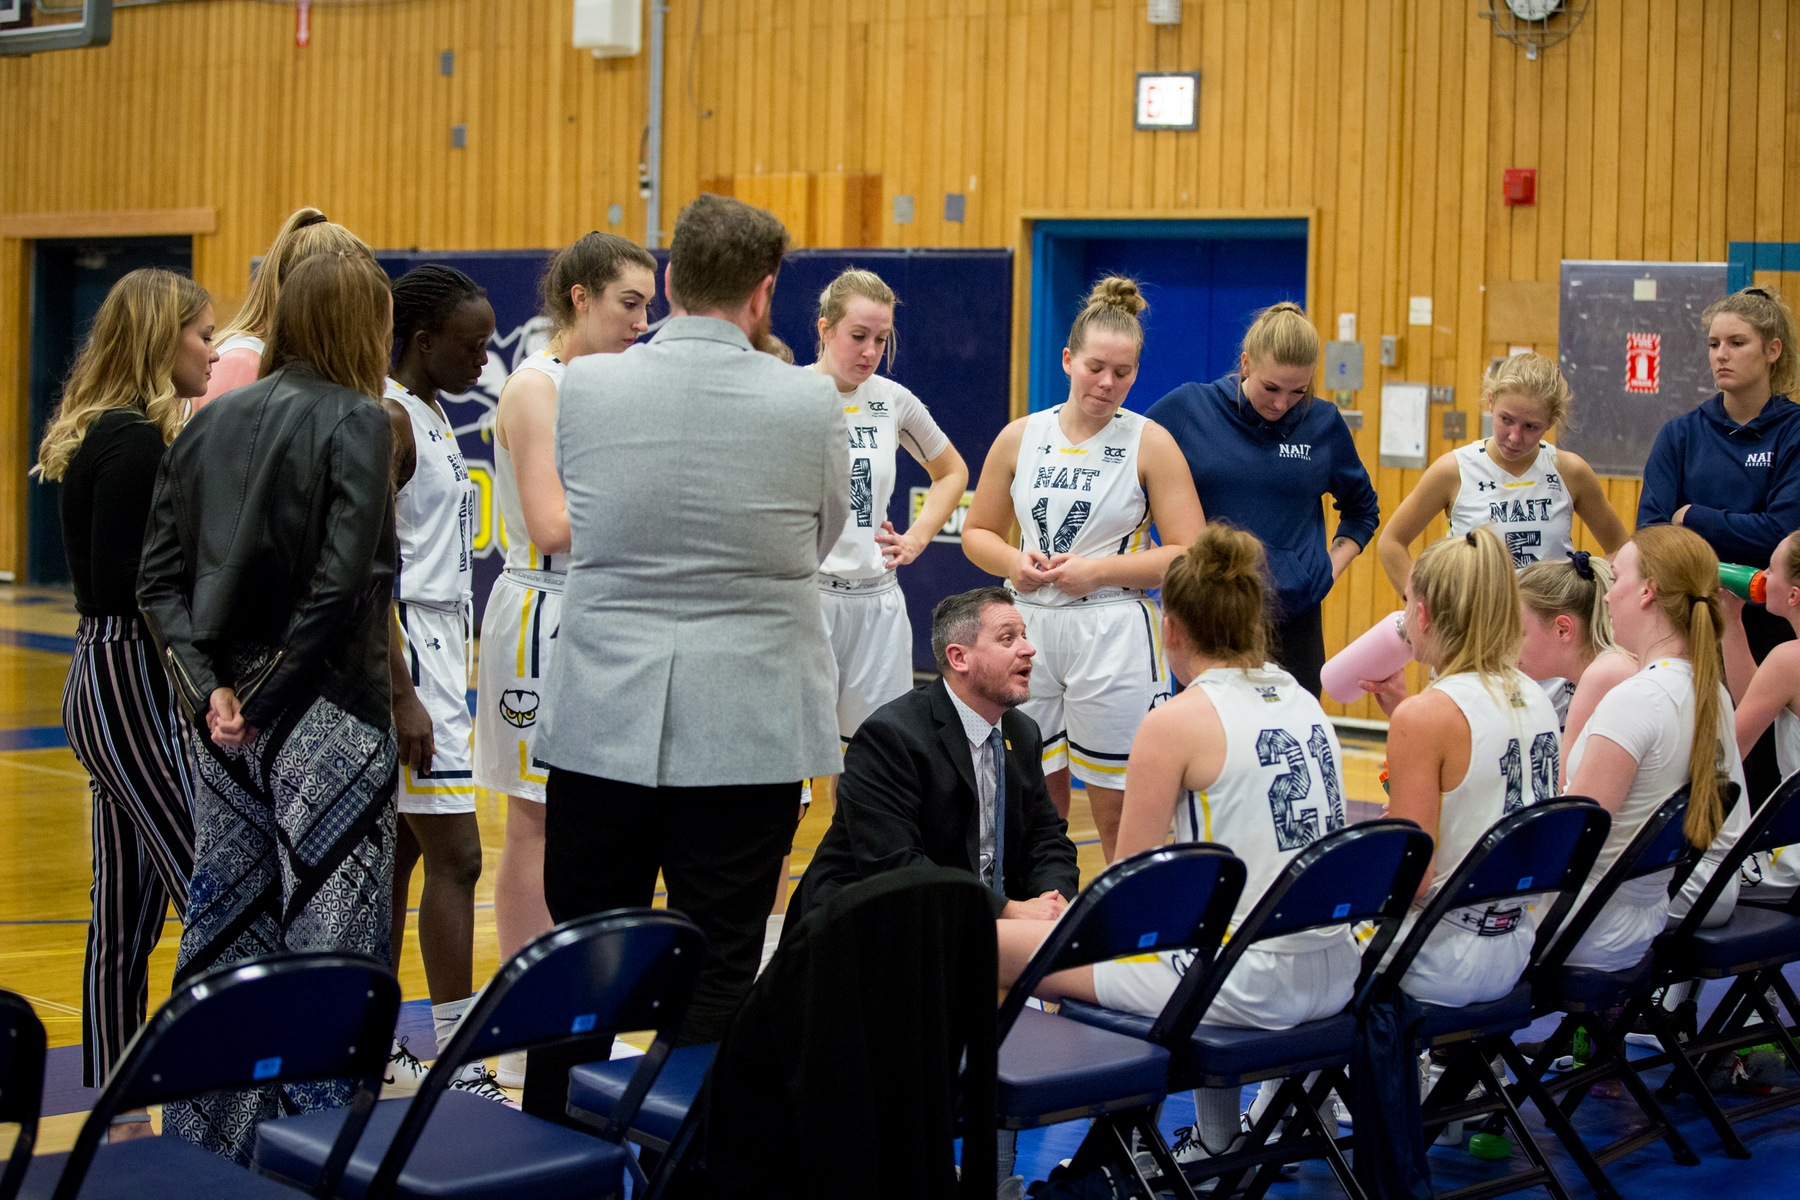 Ooks bid for second upset win in as many days falls short